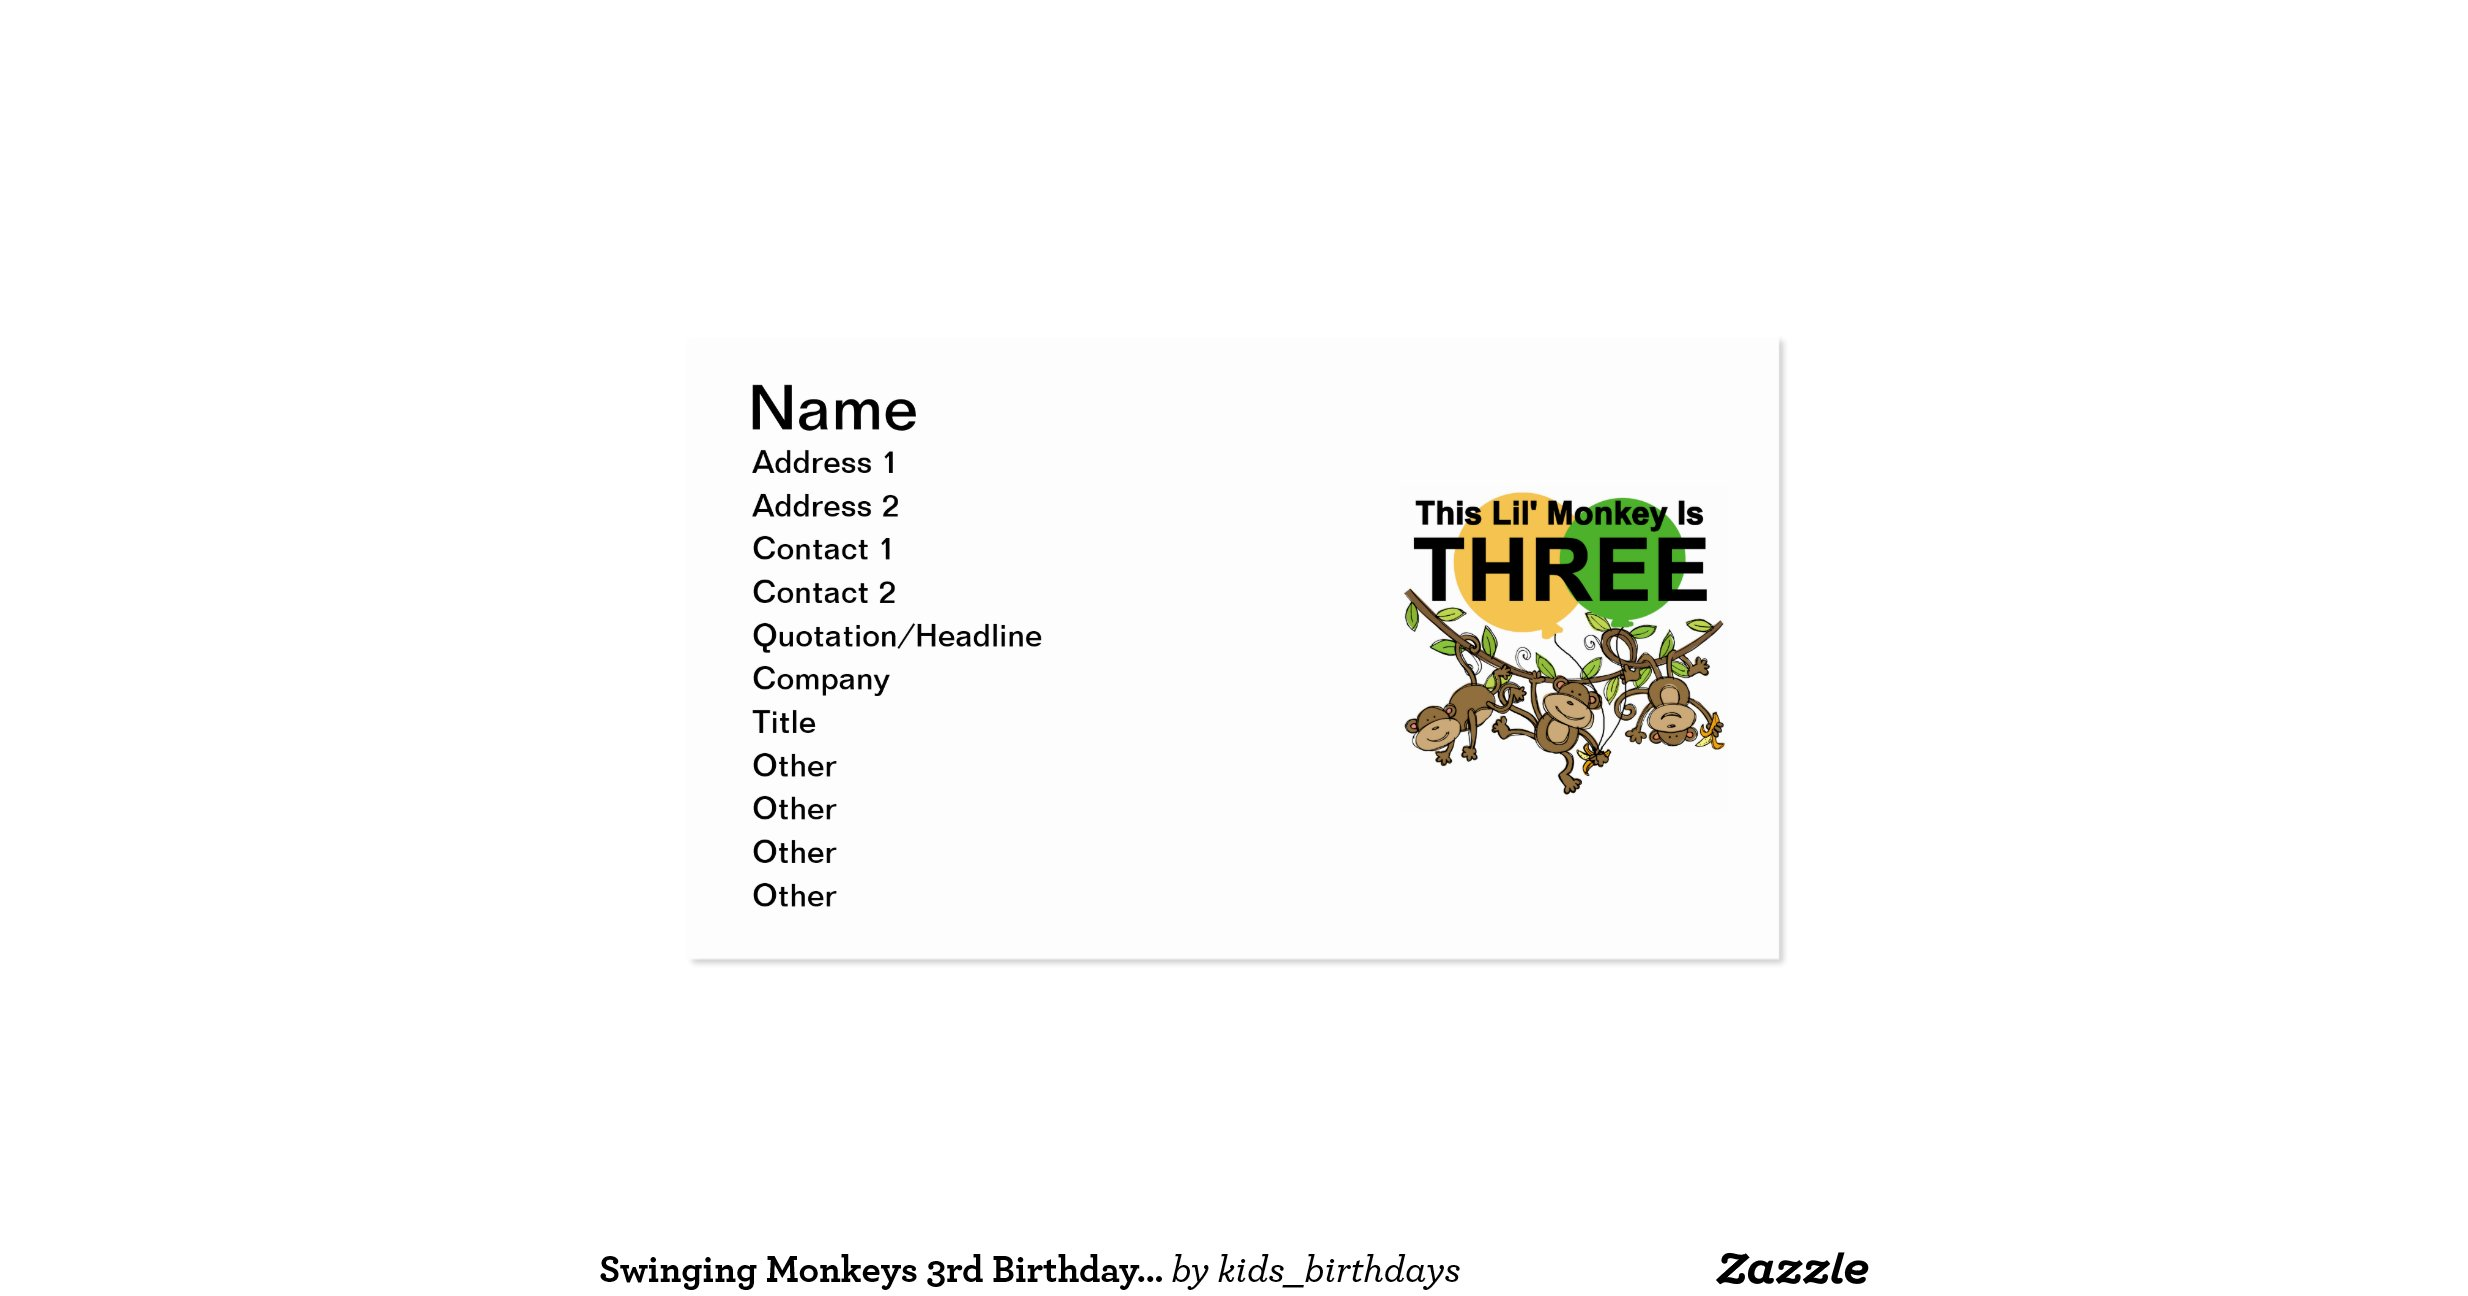 Swinging monkeys 3rd birthday tshirts and gifts double for Business cards for t shirt business